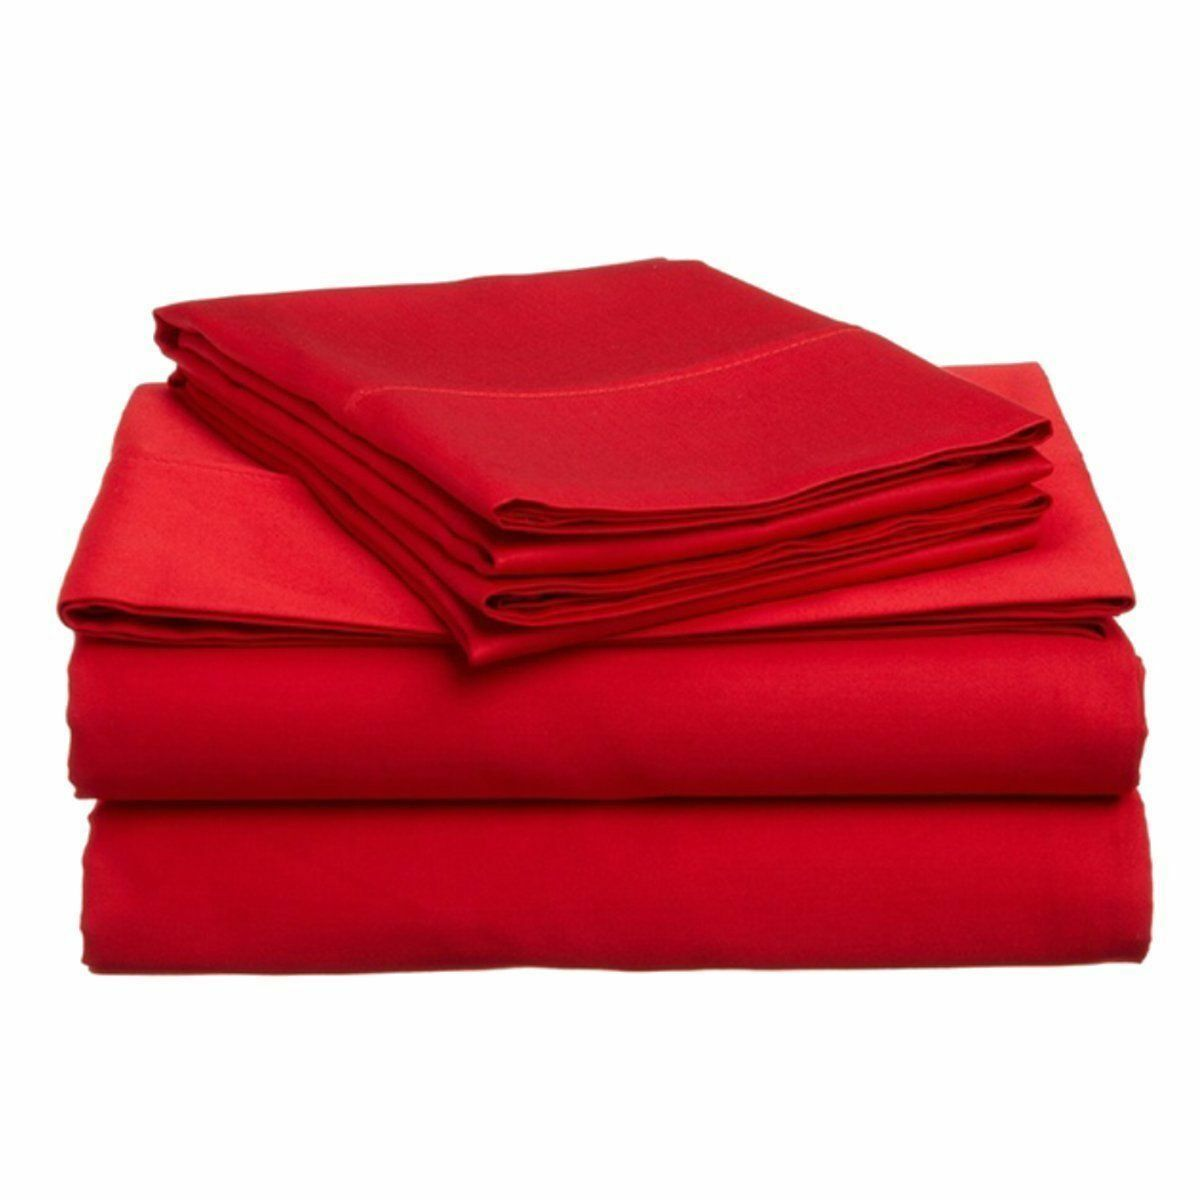 Red Solid Bed Sheet Set All Extra Deep Pkt & Sizes 1000 TC Pure Egypt Cotton